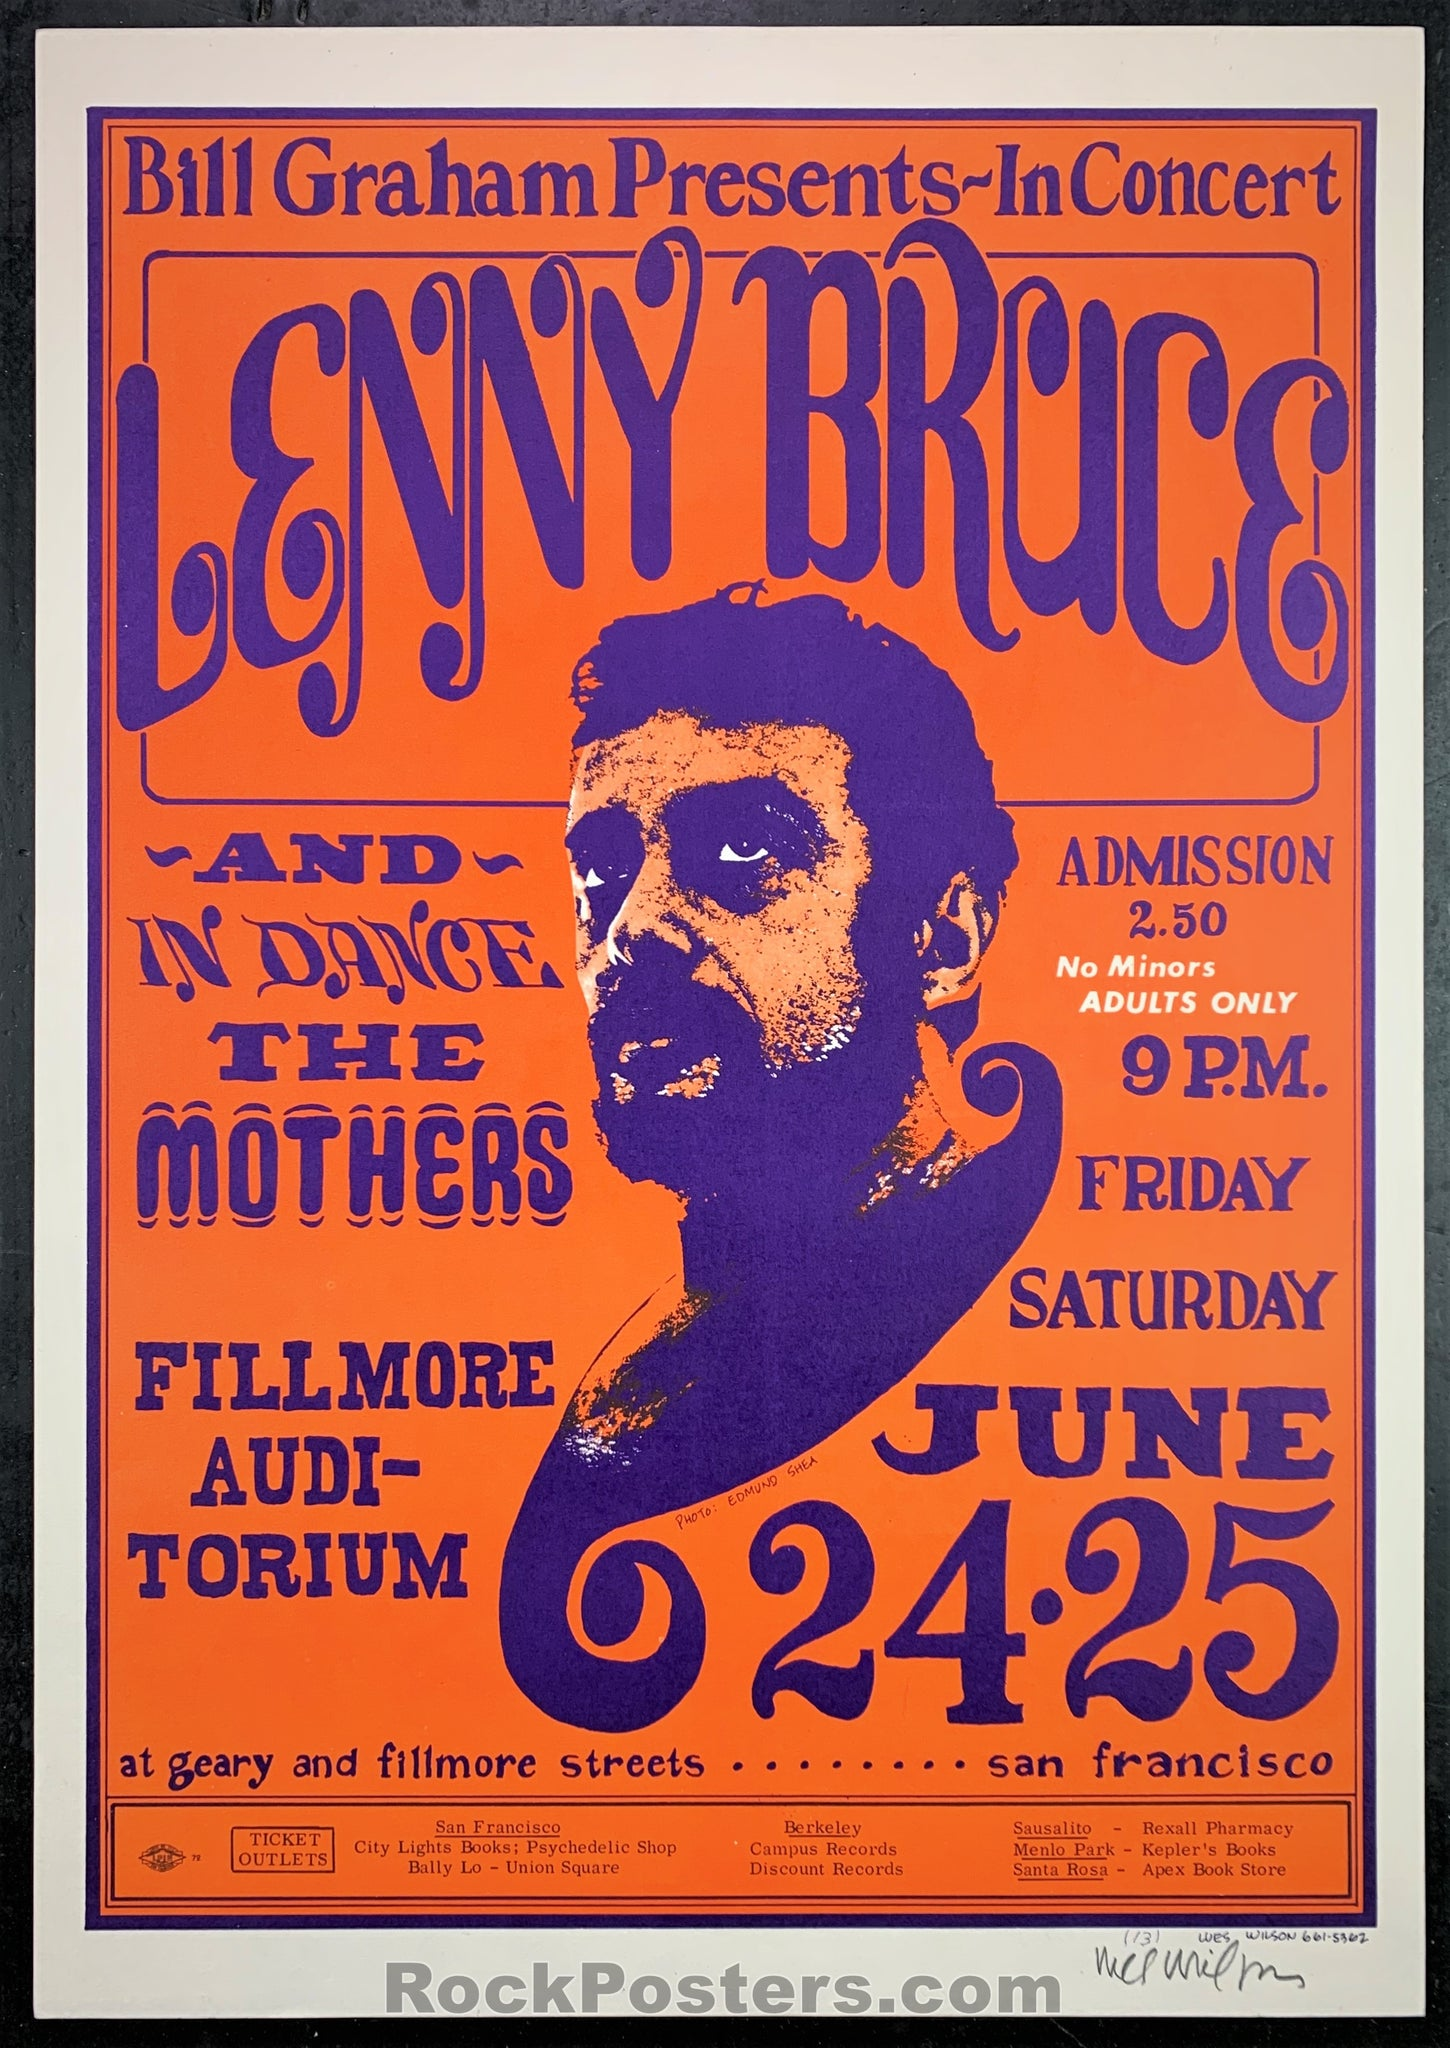 BG13 - Lenny Bruce, Mothers Poster - Fillmore Auditorium - Condition - Near Mint